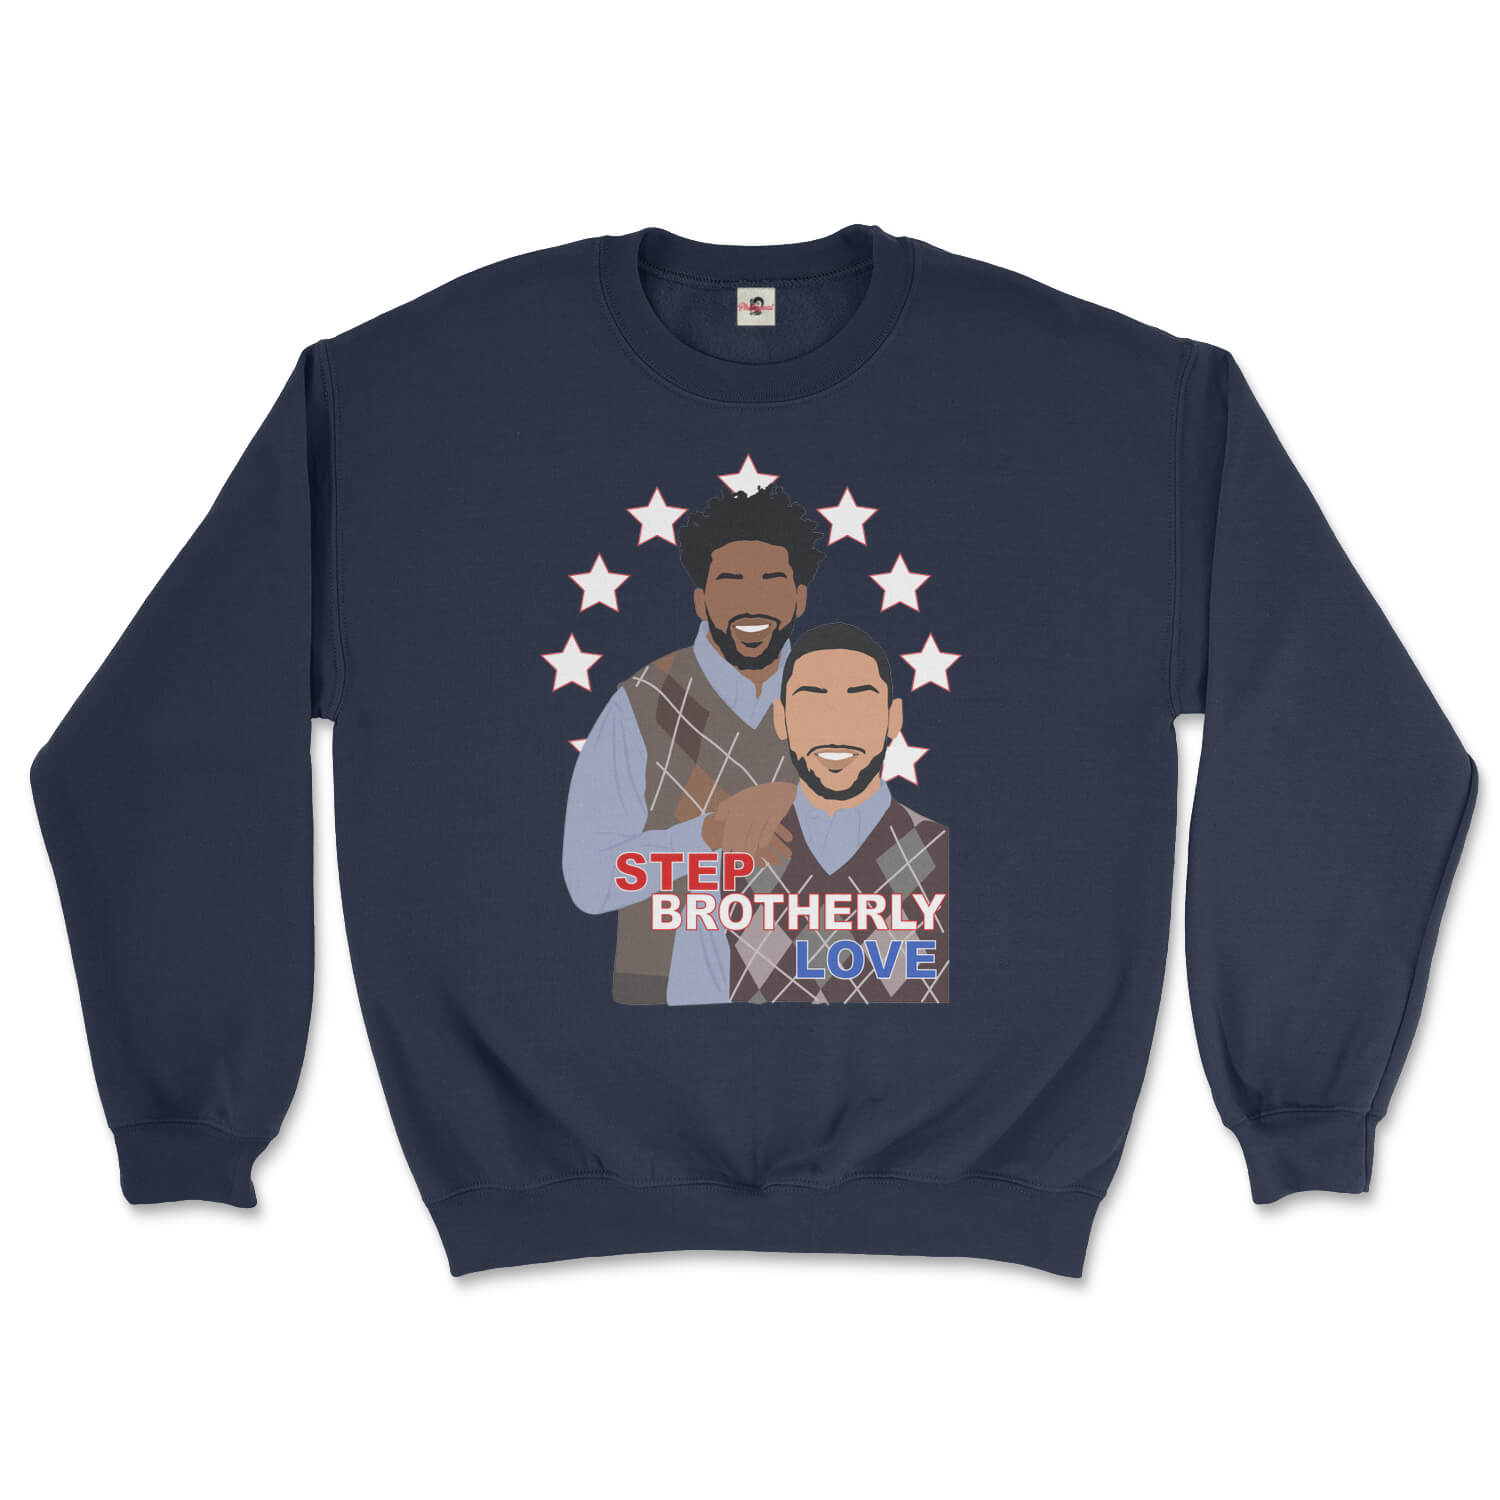 Philadelphia 76ers Joel Embiid and Ben Simmons posing like Step Brothers in an awkward family photo design on a navy blue sweatshirt from Phillygoat